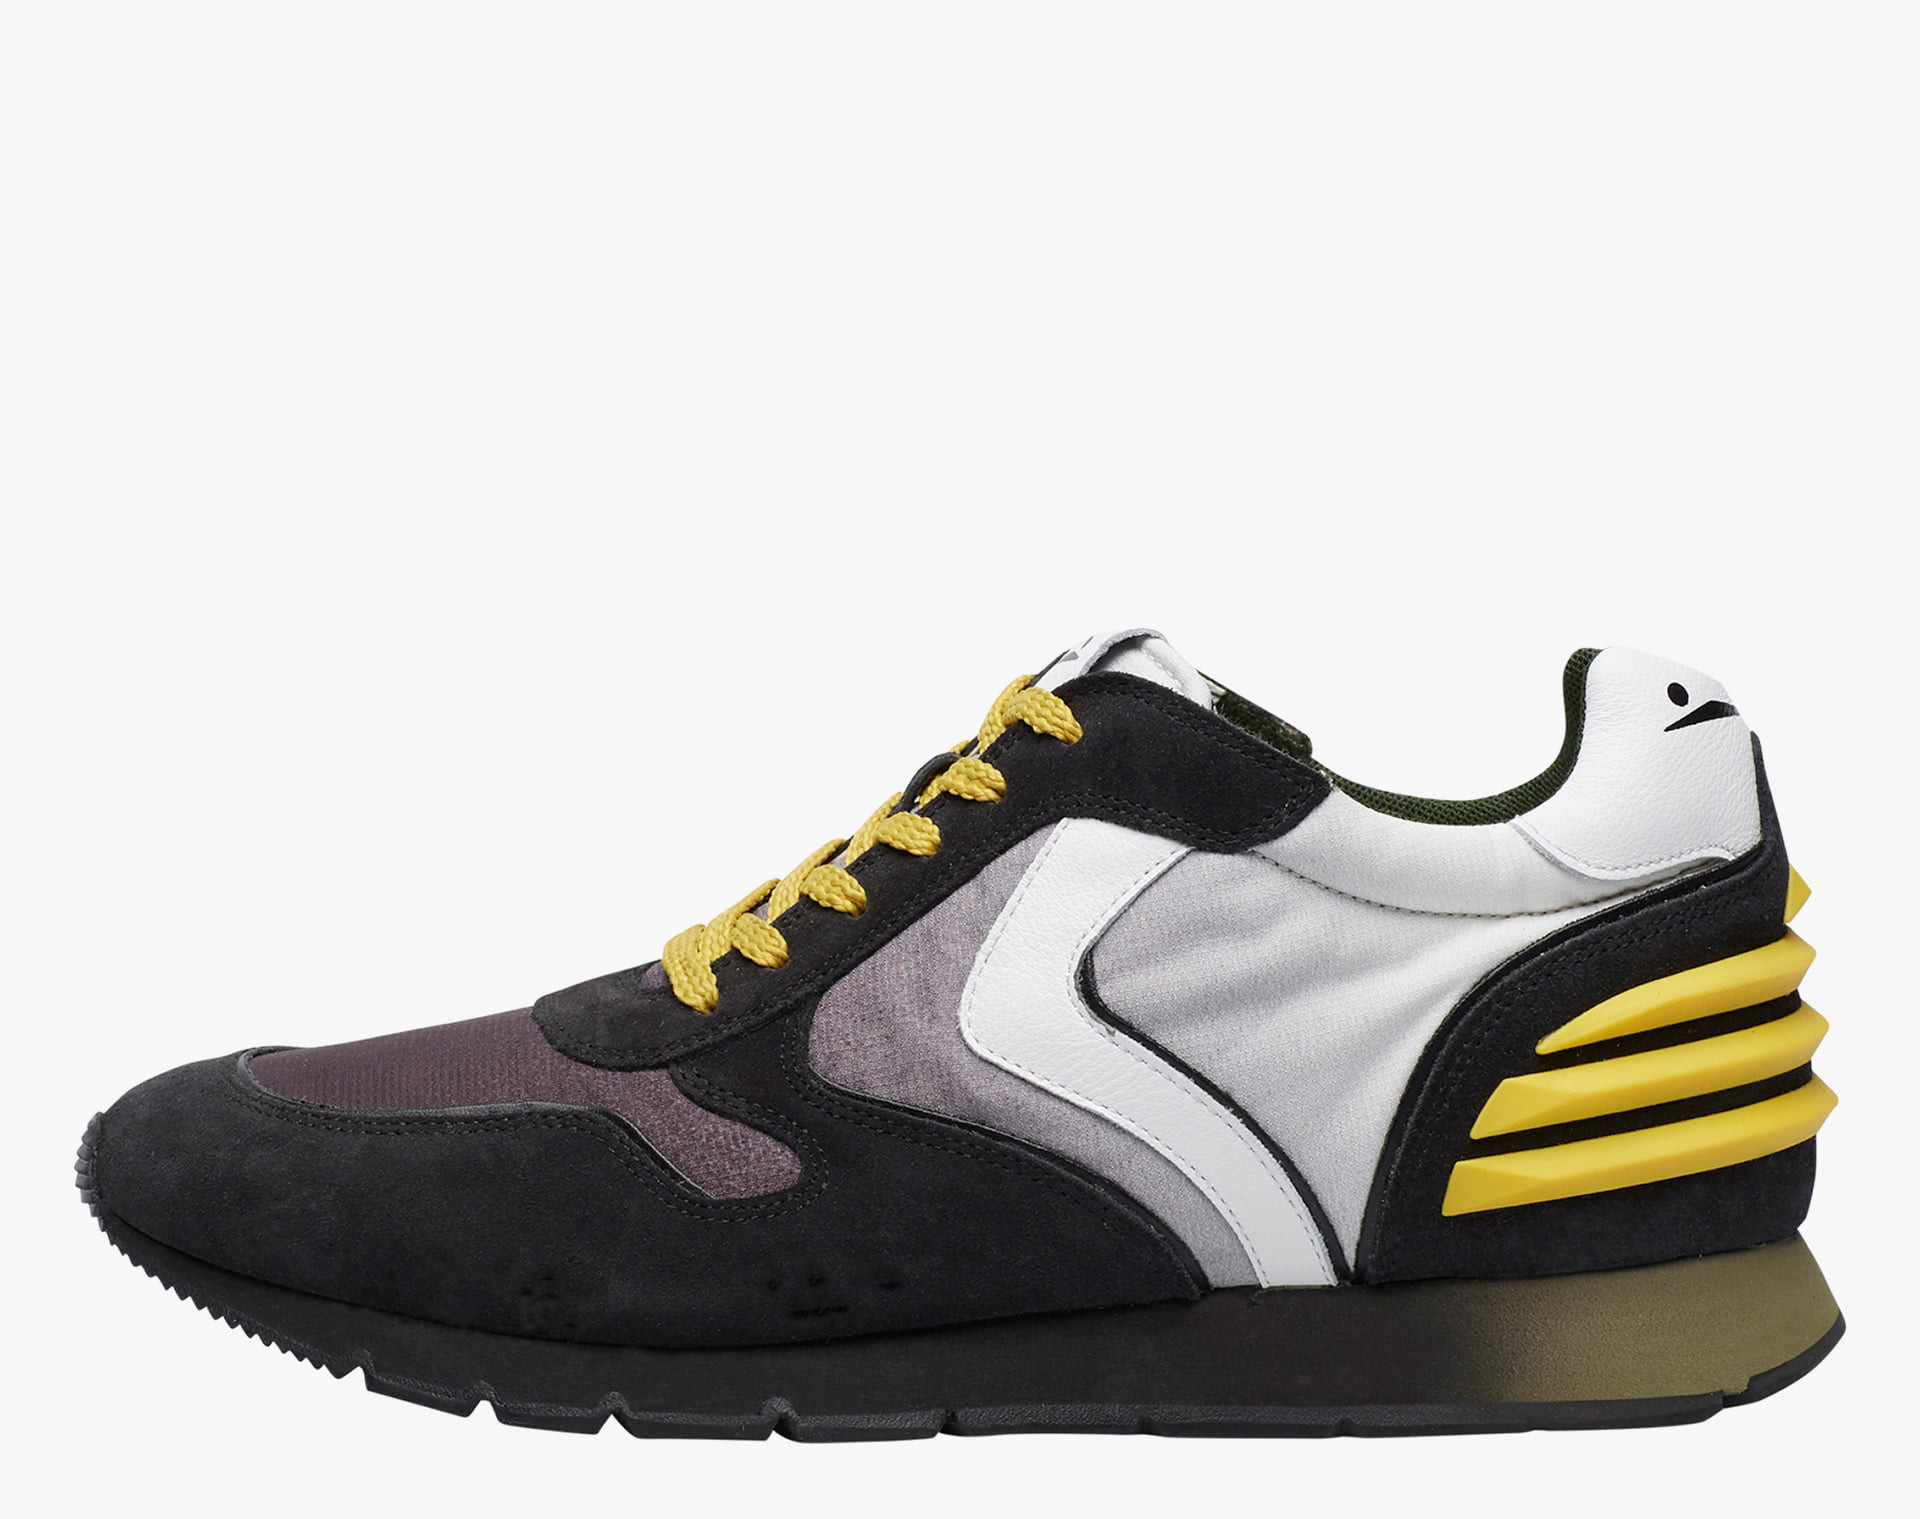 LIAM POWER - Sneaker in suede and degrade' fabric - Black/White